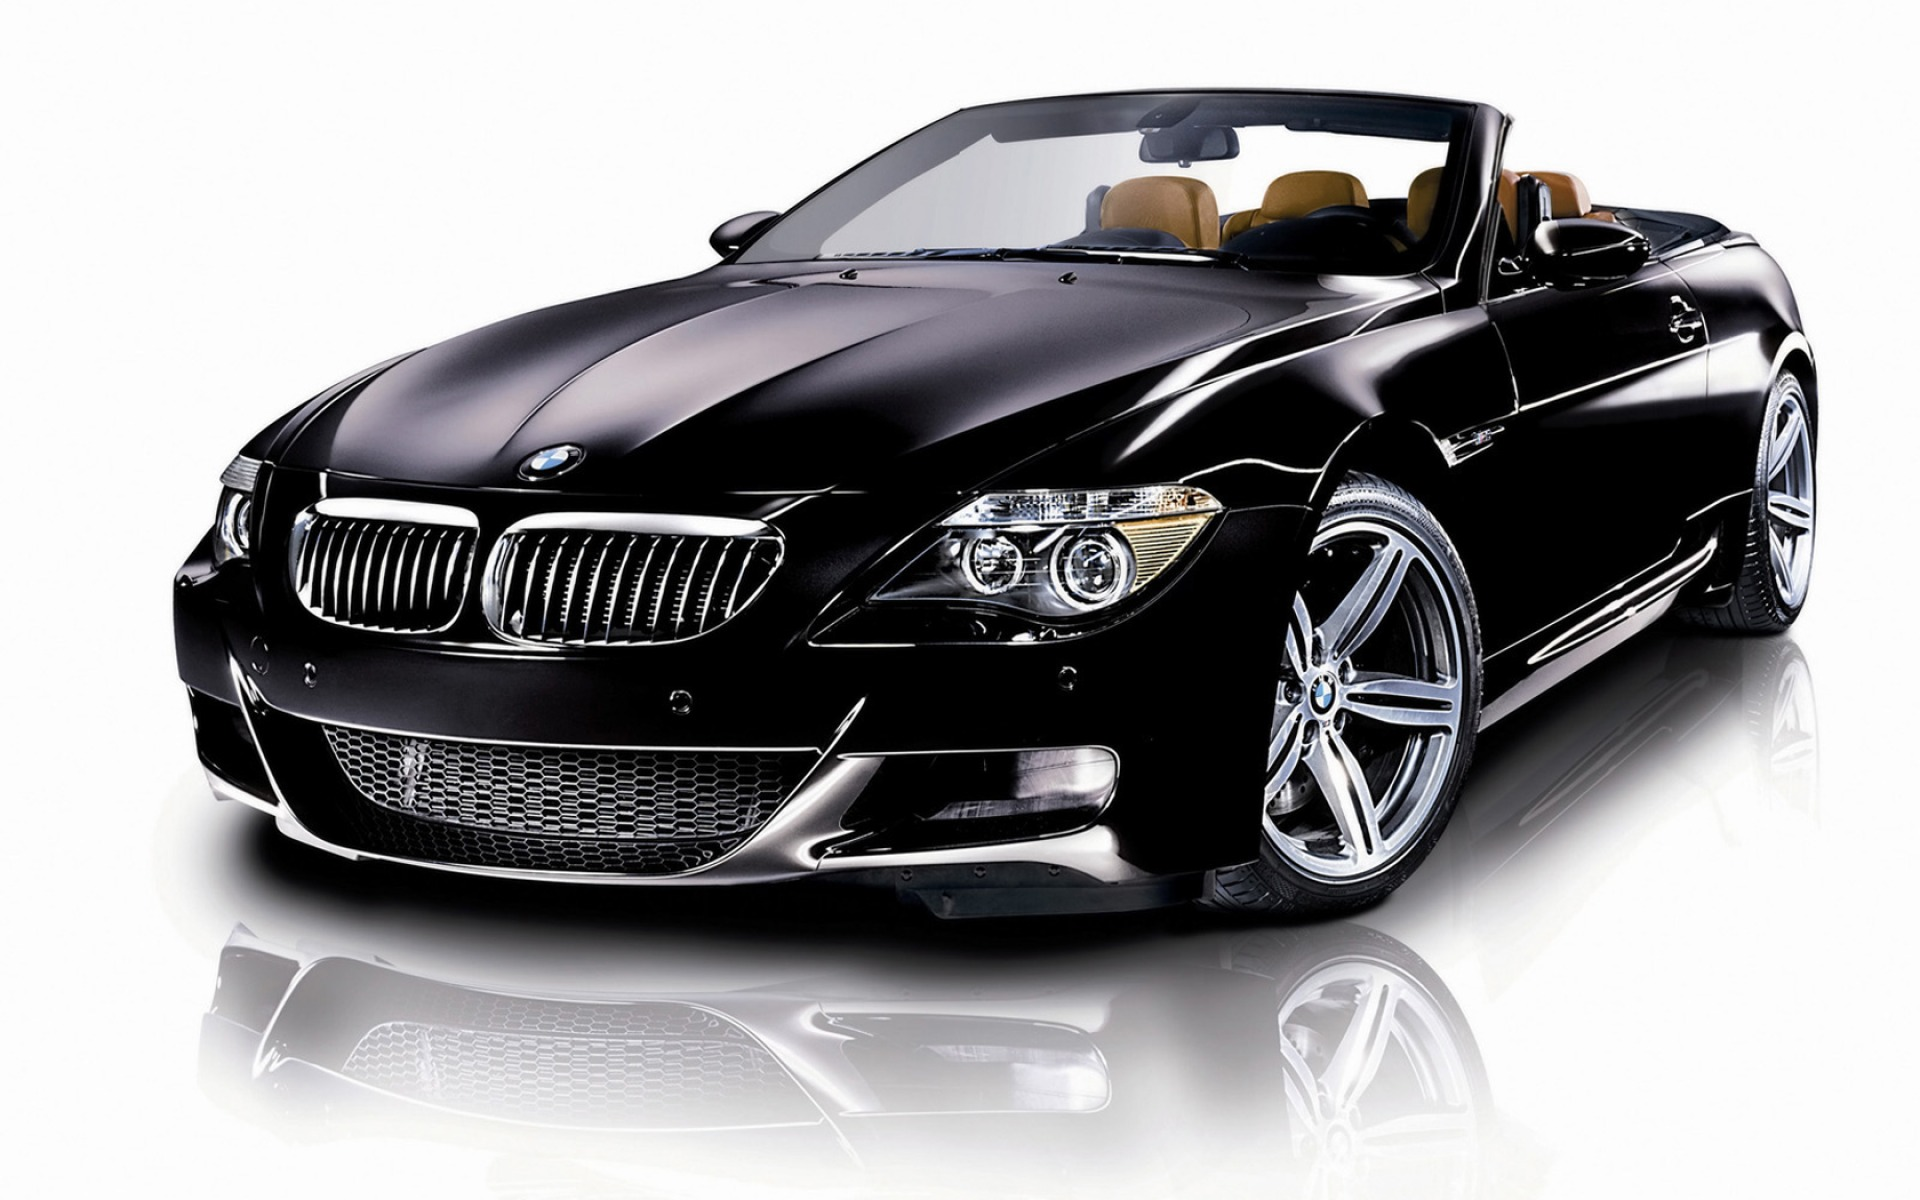 Ultrablogus  Winsome Bmw Car Wallpaper Wallpapers For Free Download About   With Lovely Bmw M Convertible Wallpaper Bmw Cars With Delectable  Dodge Intrepid Interior Also  Bmw Ci Interior In Addition White Mustang Red Interior And Acura Rsx Interior As Well As  Bmw I Interior Additionally Rx Interior From Allfreedownloadcom With Ultrablogus  Lovely Bmw Car Wallpaper Wallpapers For Free Download About   With Delectable Bmw M Convertible Wallpaper Bmw Cars And Winsome  Dodge Intrepid Interior Also  Bmw Ci Interior In Addition White Mustang Red Interior From Allfreedownloadcom